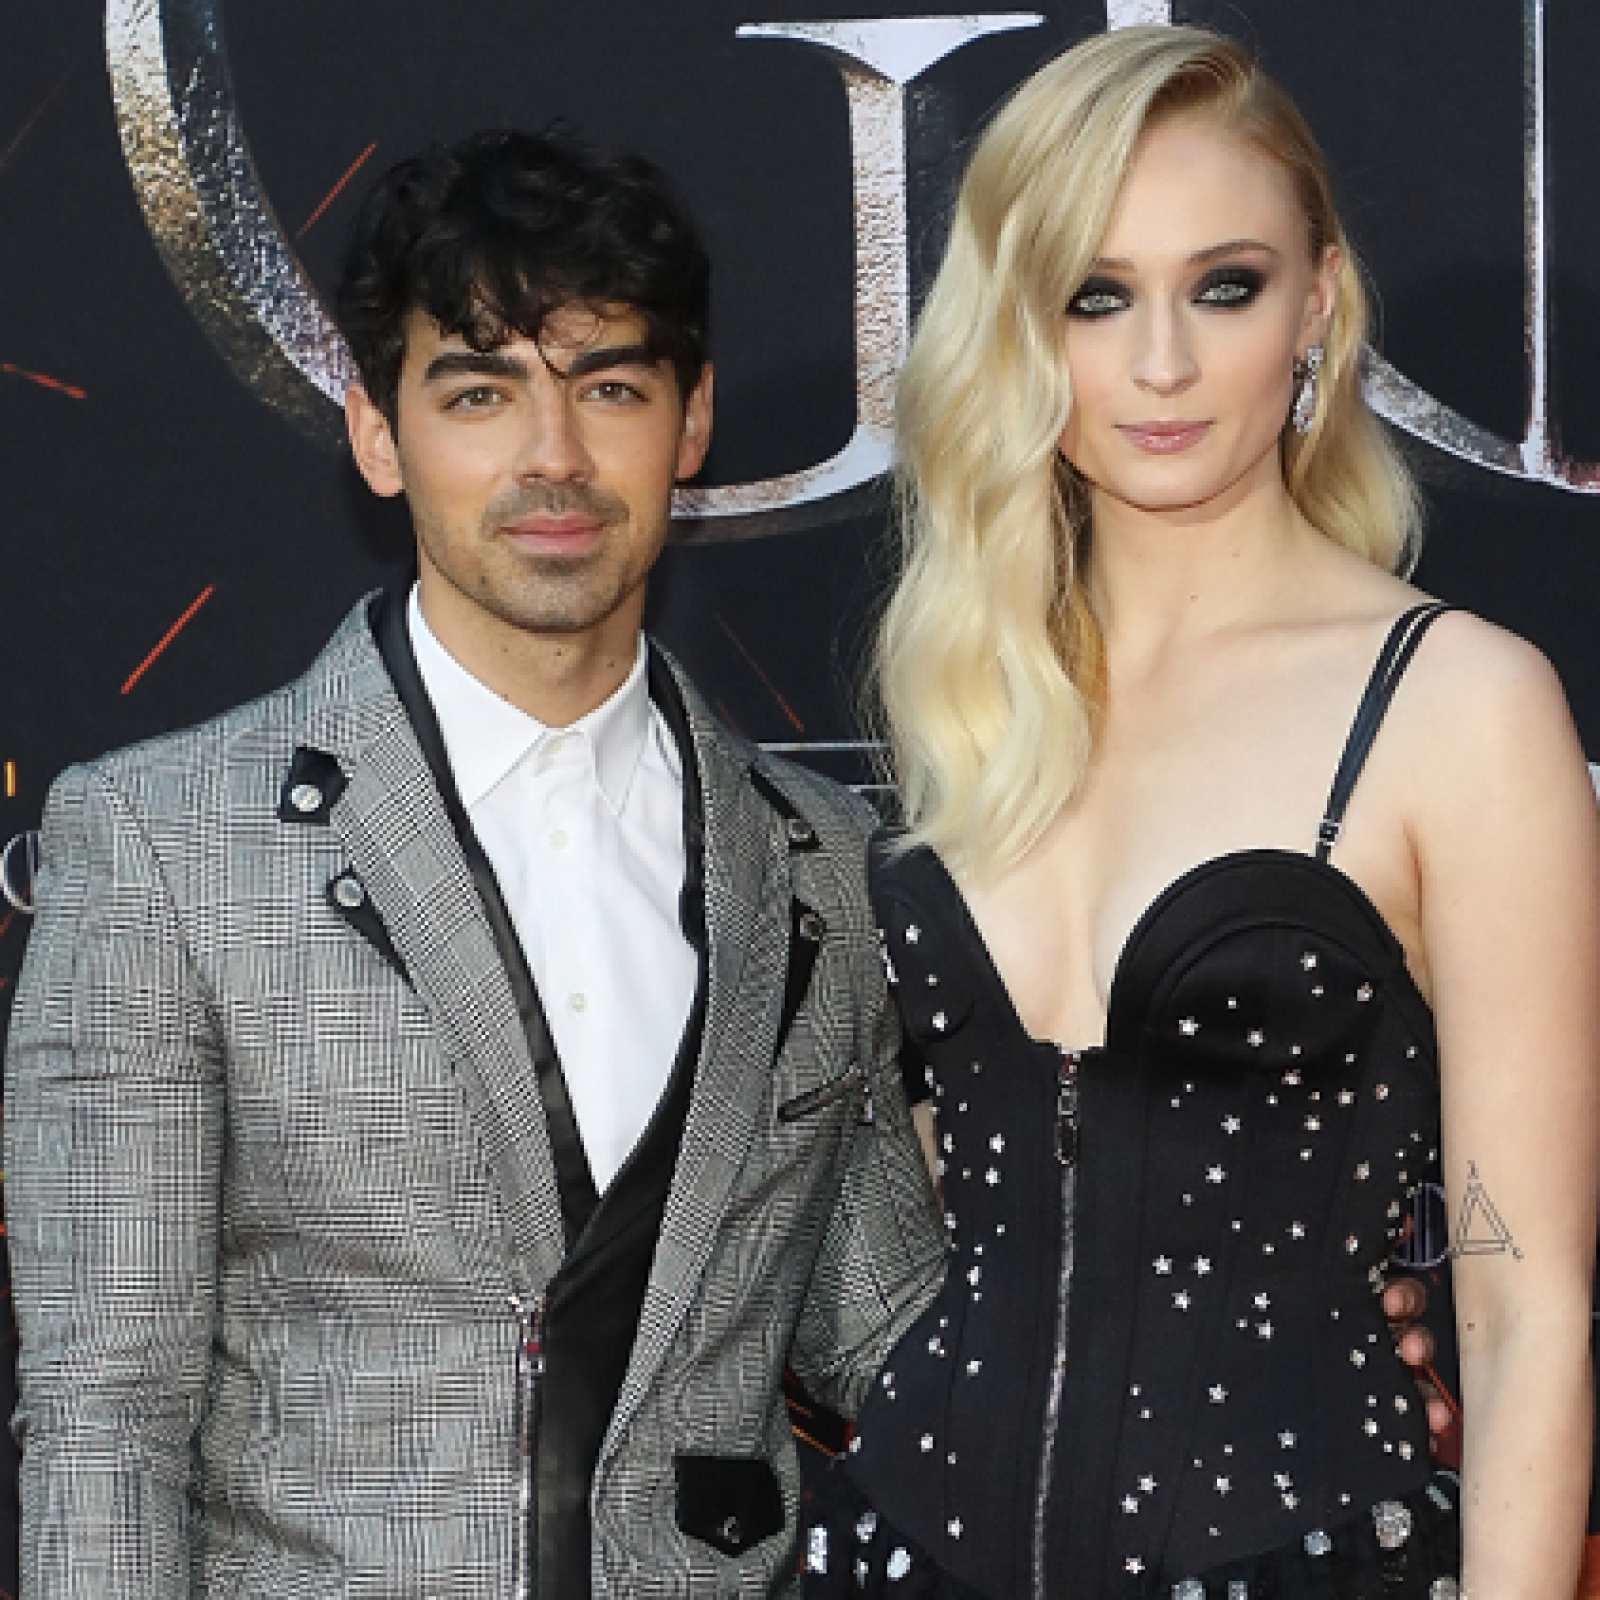 Sophie Turner Wedding.Sophie Turner And Joe Jonas Elope With Surprise Wedding Following